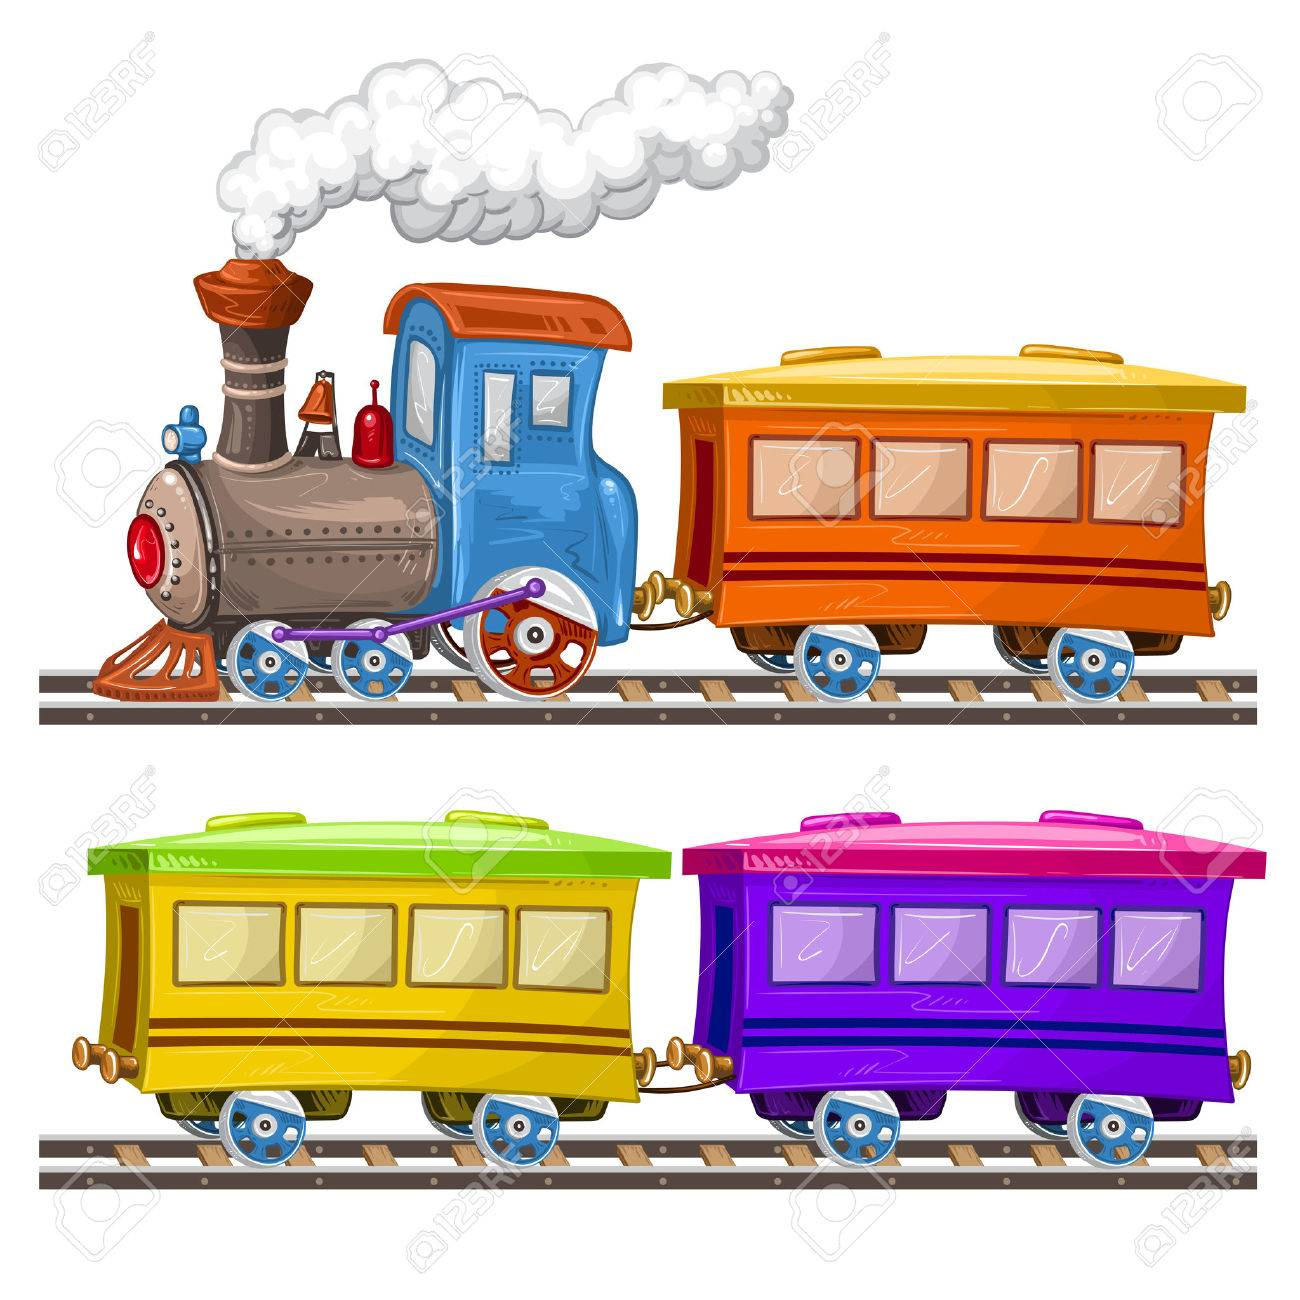 Color trains, wagons and rails - 50336169